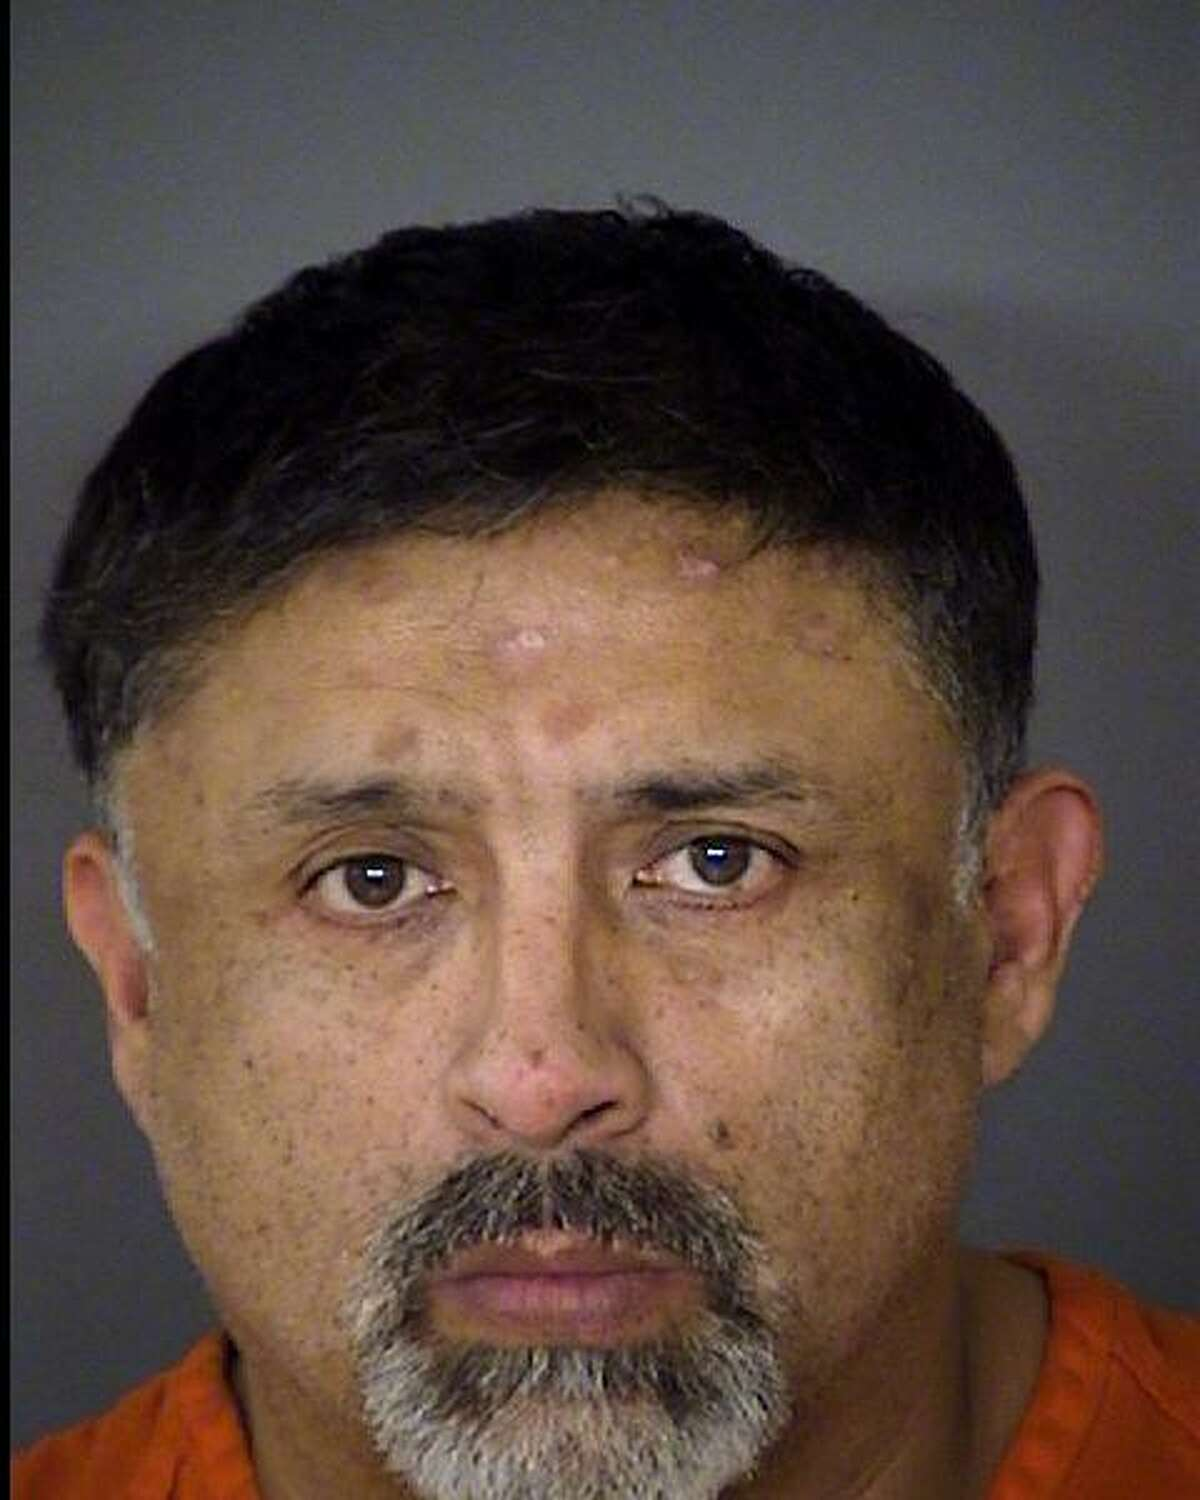 Joel Soto, seen in a Nov. 21, 2013 Bexar County Jail booking mug, initially was charged with arson but was re-indicted on a murder charge in 2015.